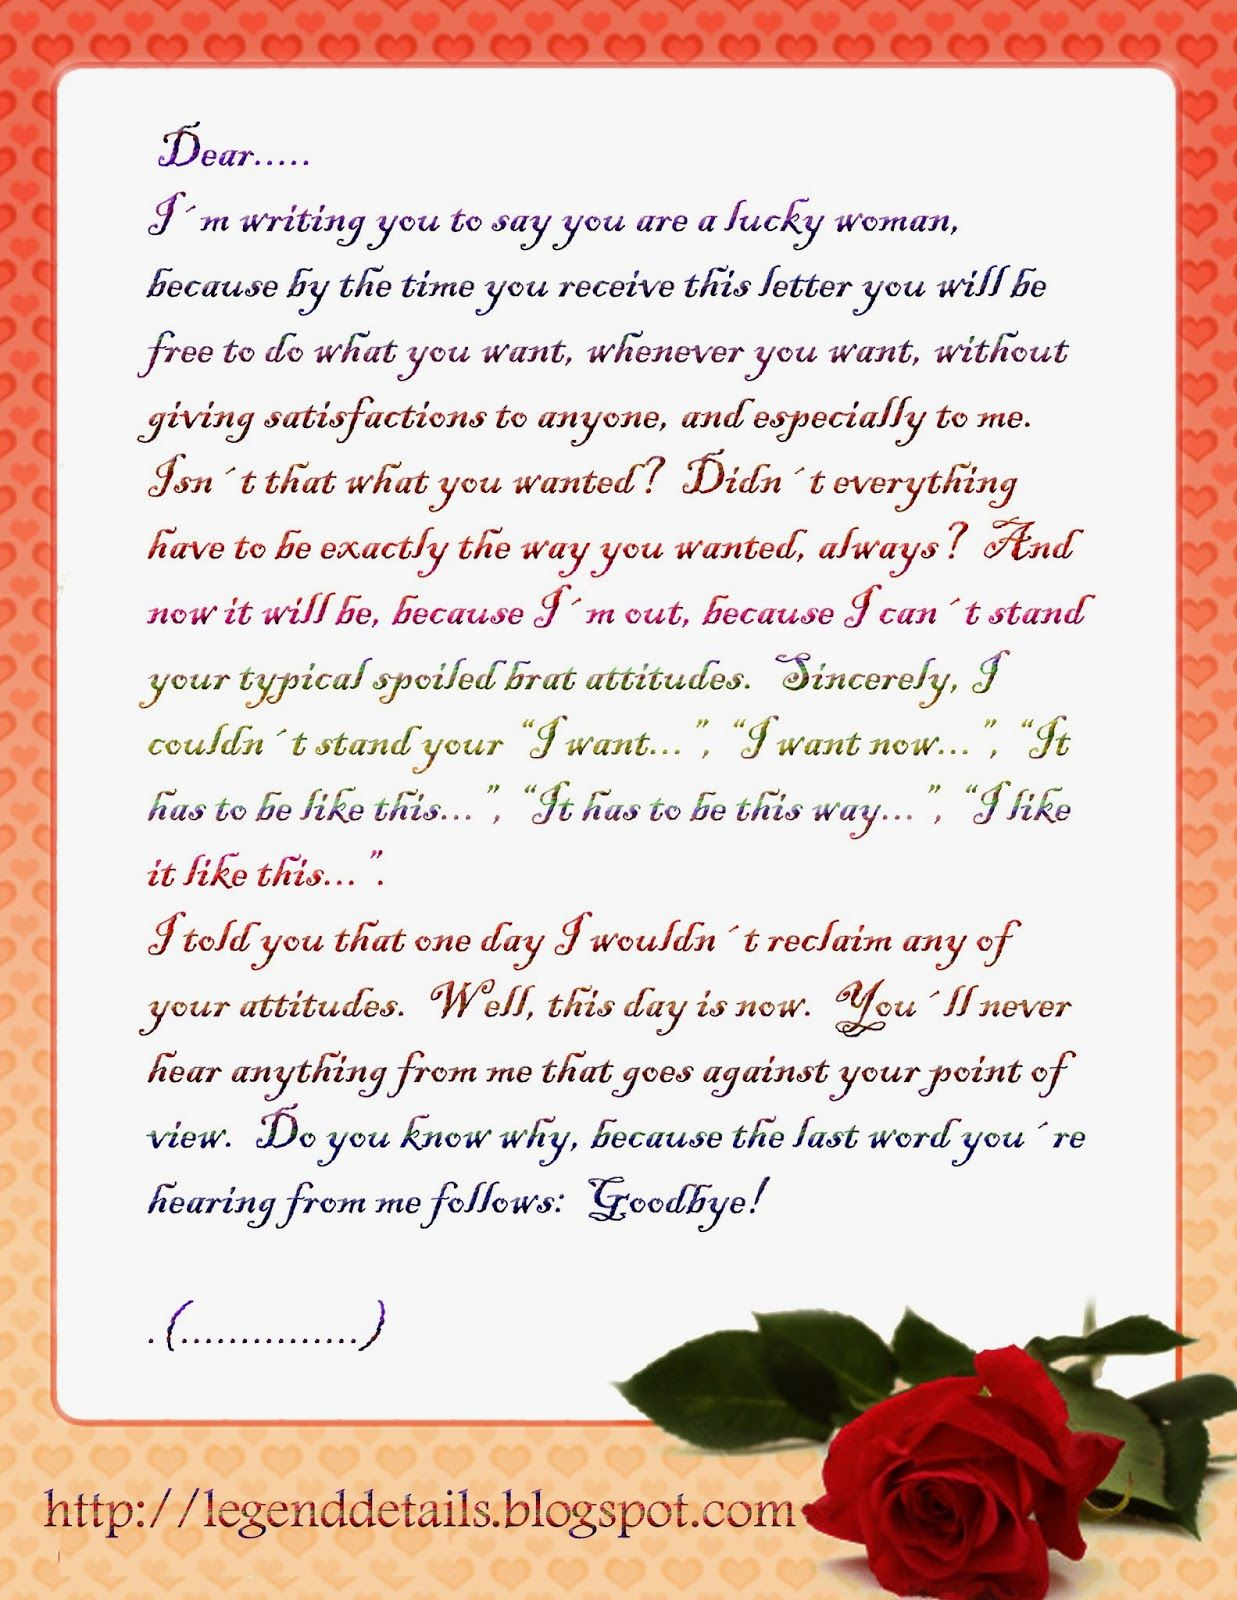 Collections Of Hundreds Of Free Sample Love Letter From All Over